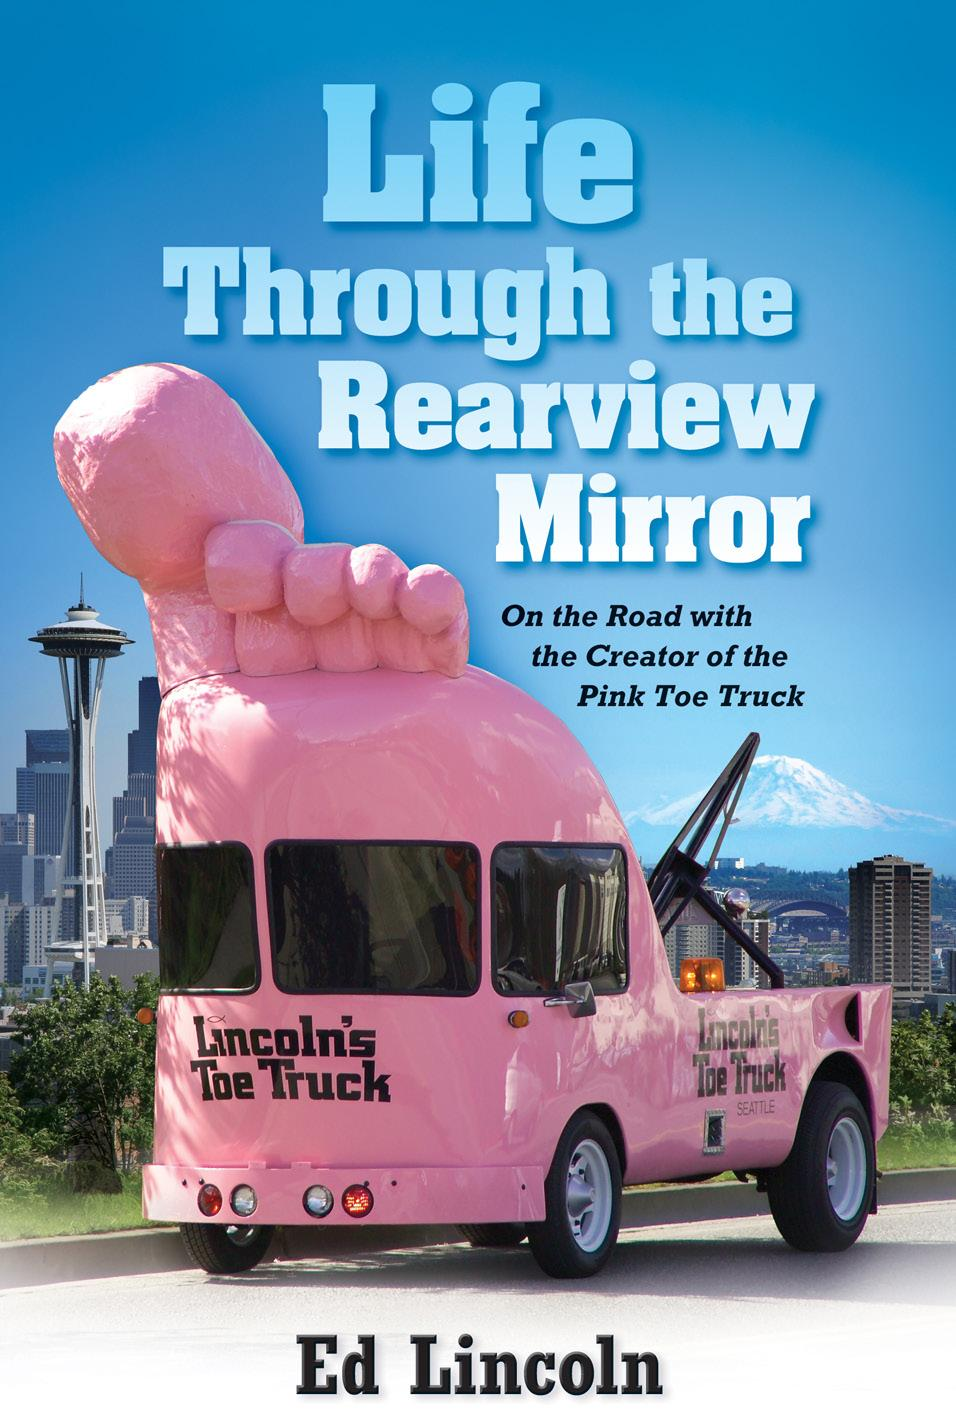 Ed has lived on the Eastside for 40 years and recalls that his famous Lincoln s Pink Toe Truck was in Redmond s Derby parade one year.